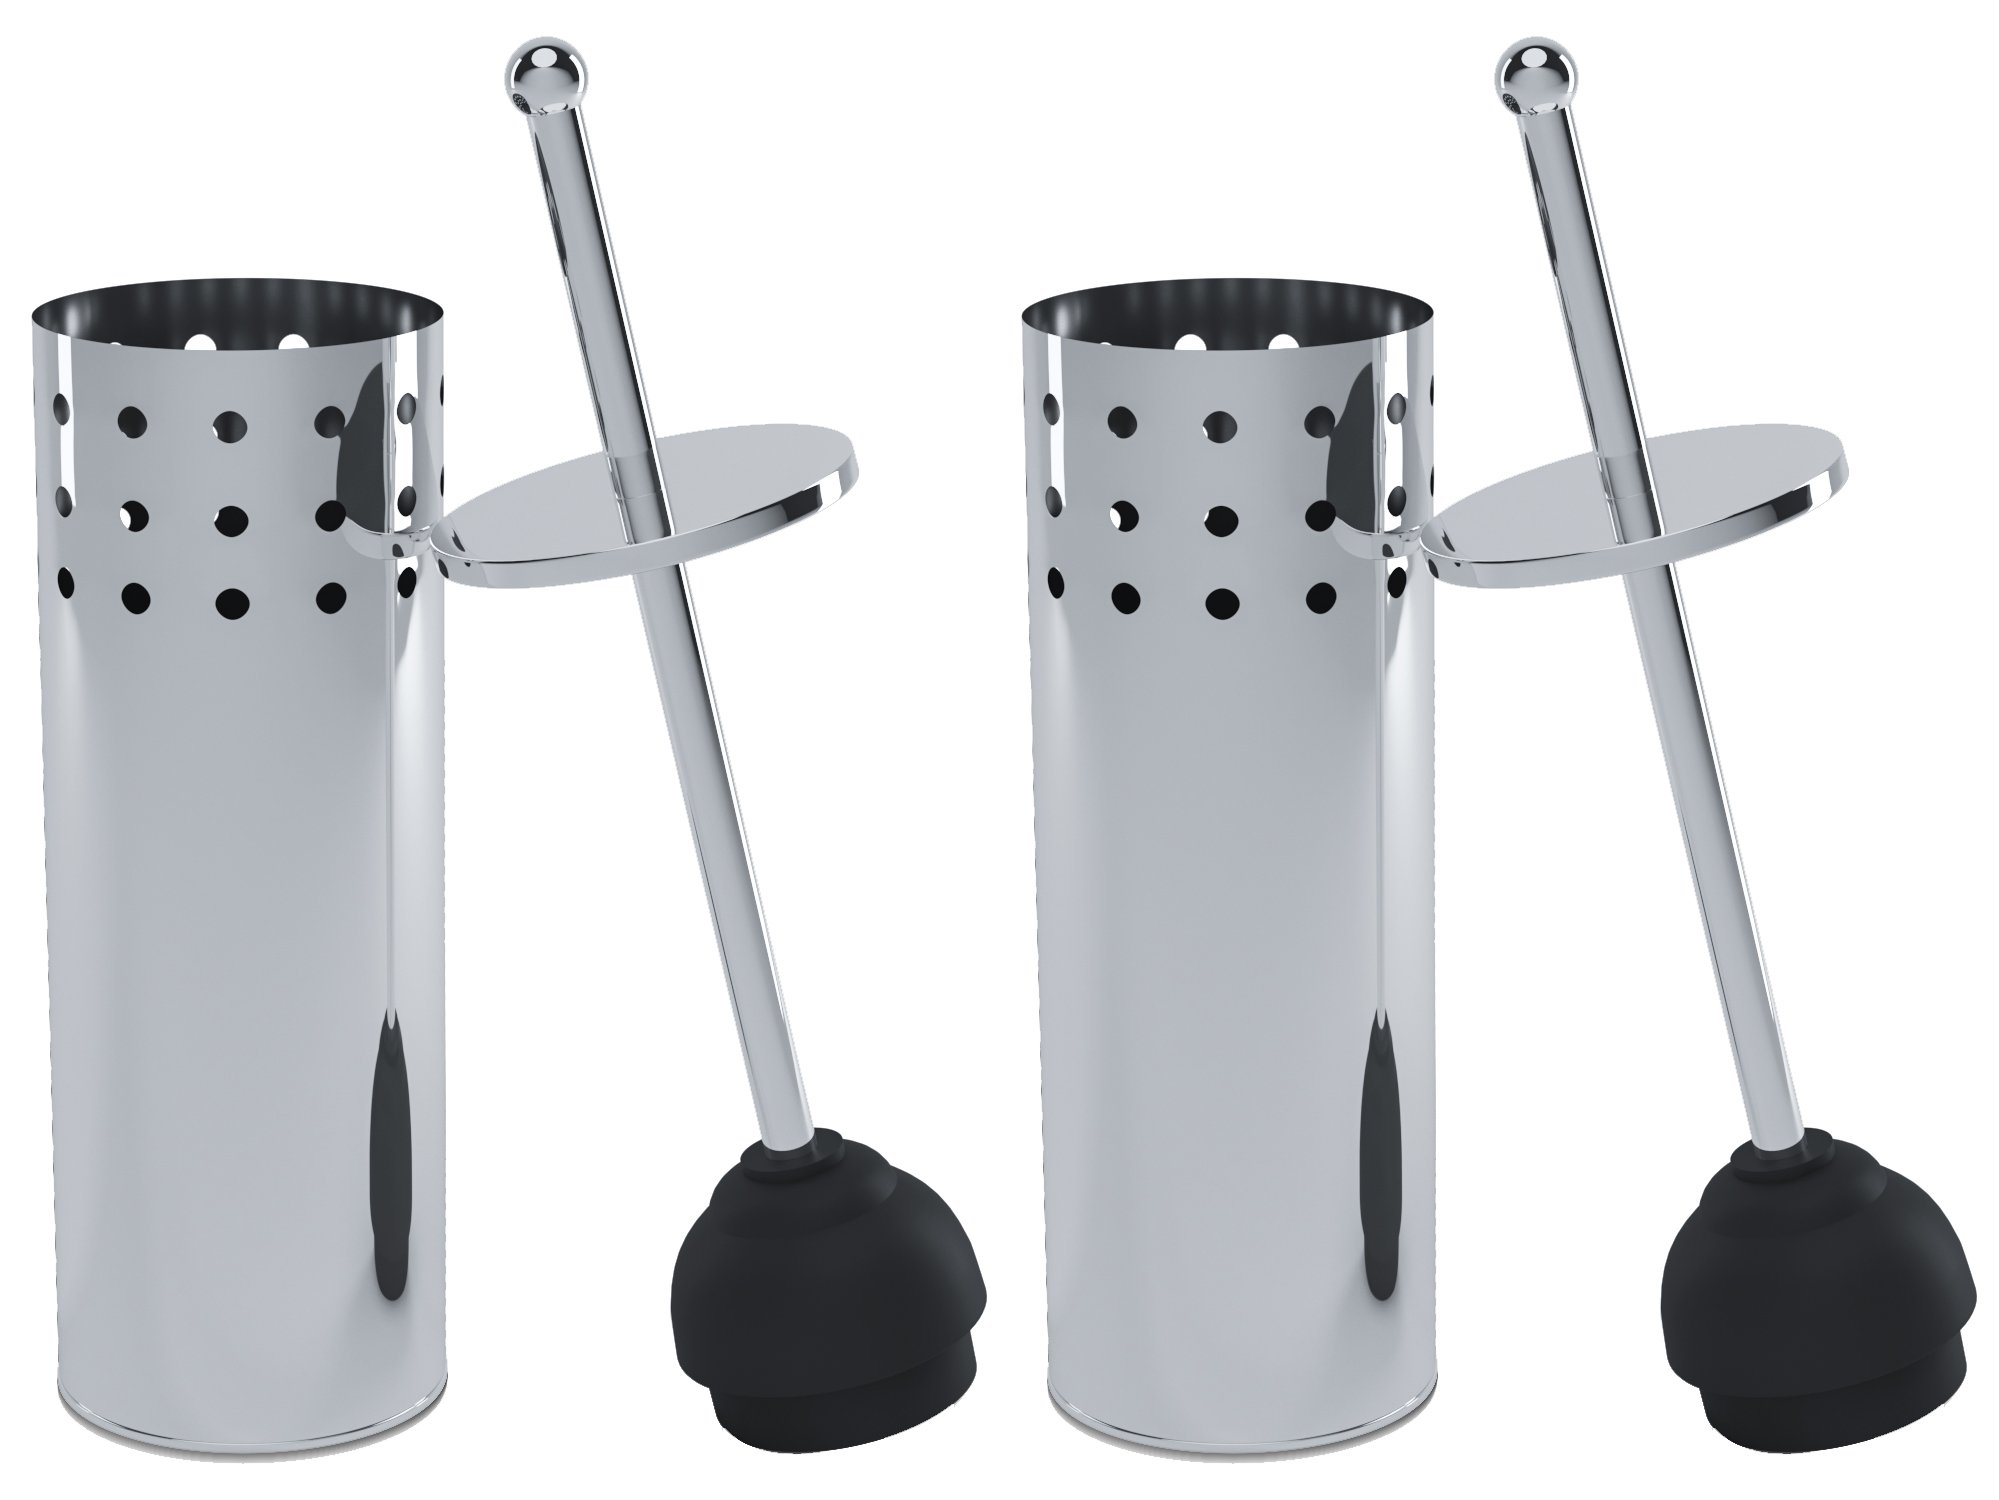 Home Intuition Vented Toilet Plunger with Holder for Bathroom, Chrome, 2 Pack by Home Intuition